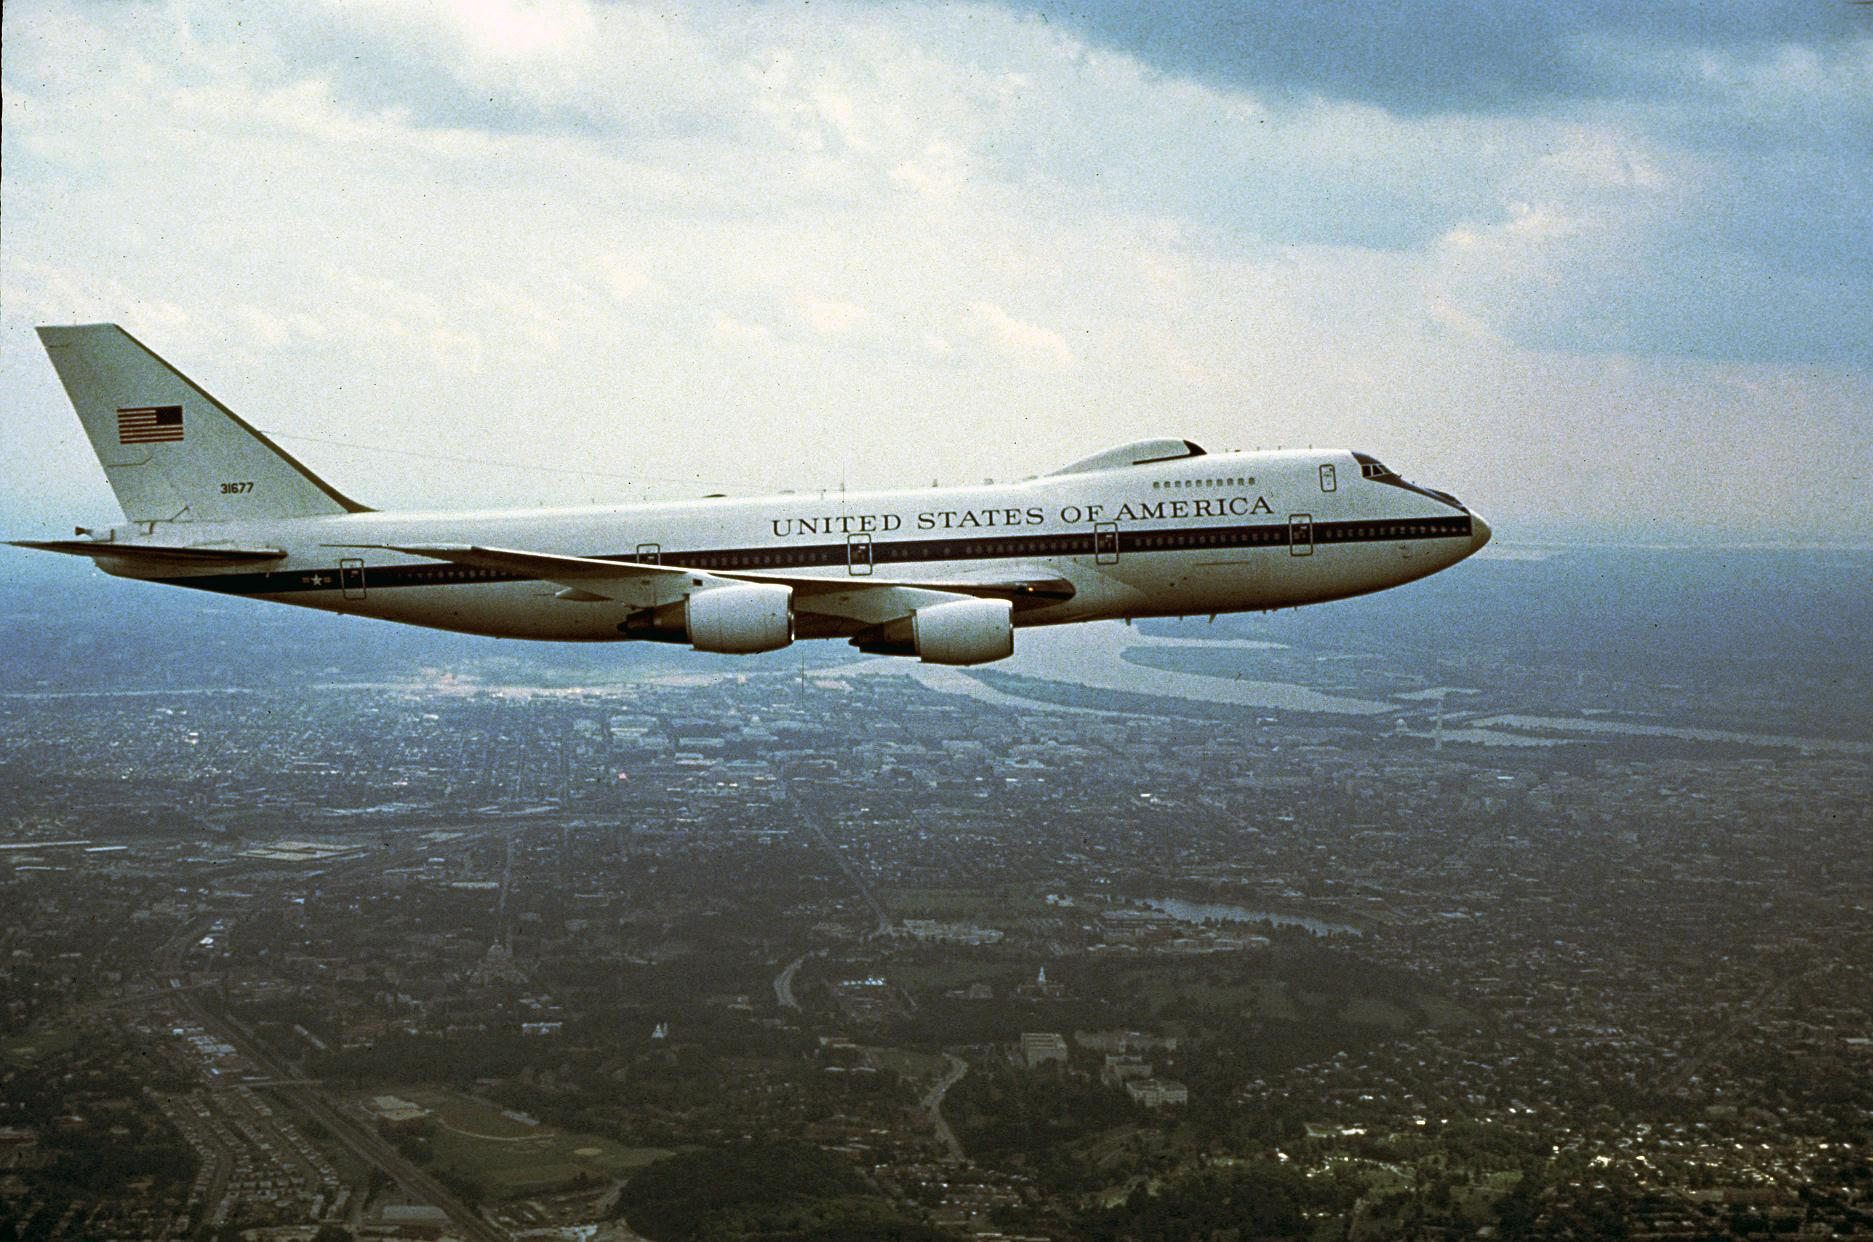 E-4B - E-4B flying over a city.